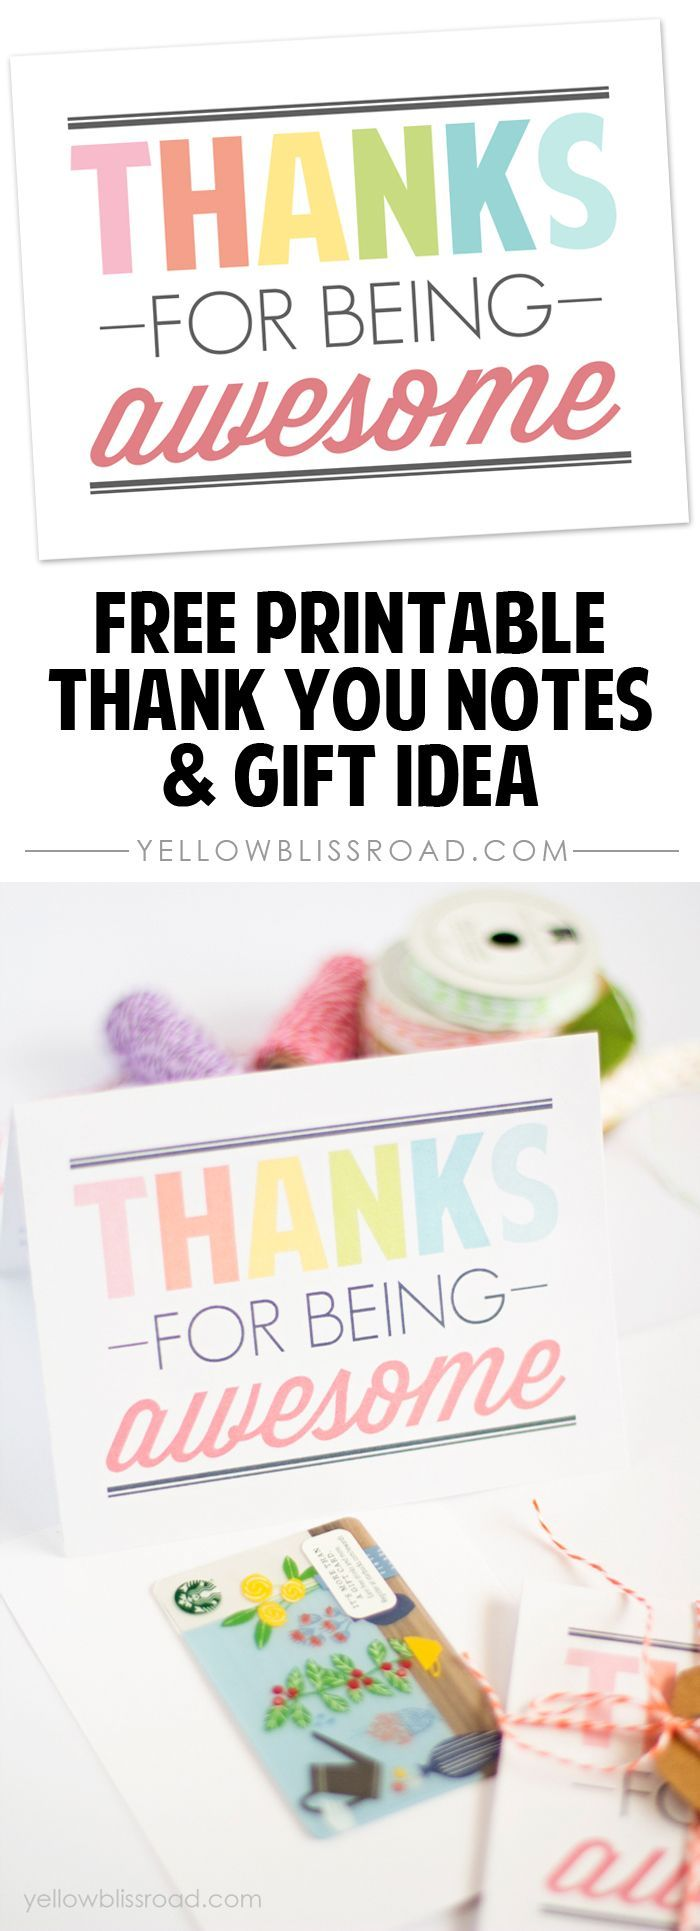 thank you notes for gifts